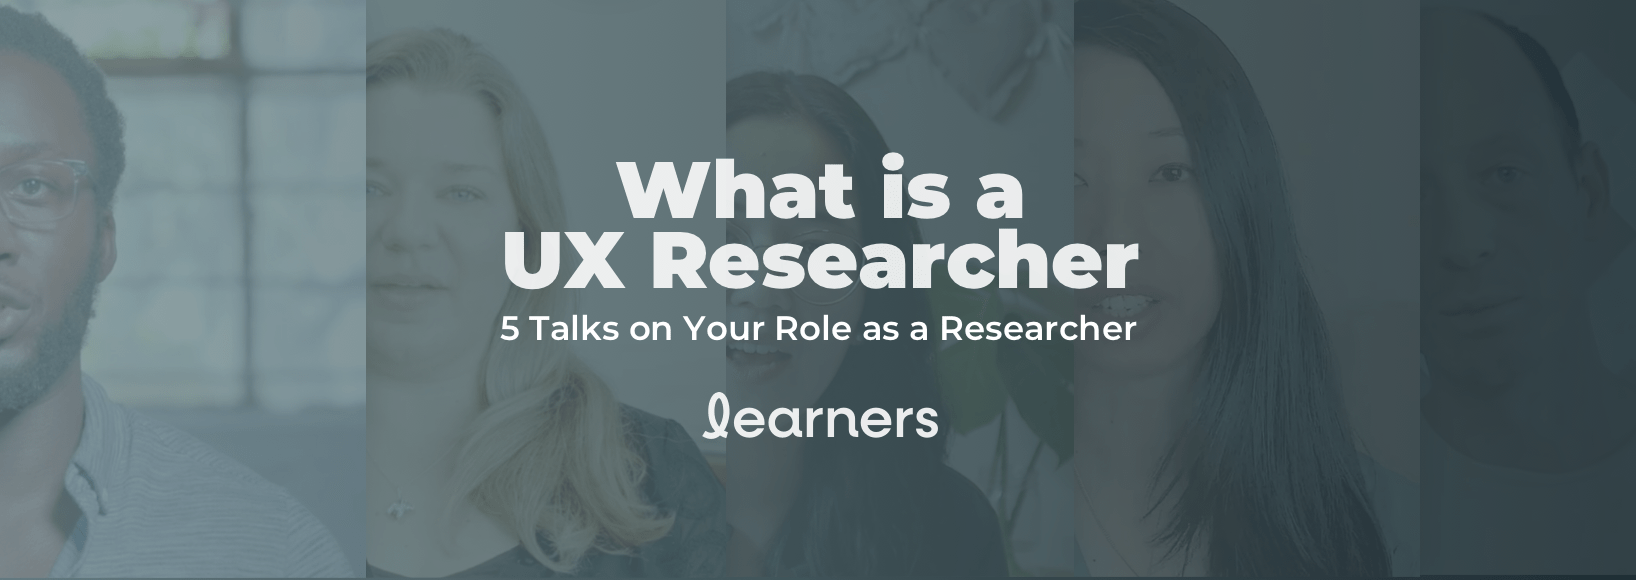 What is a ux researcher